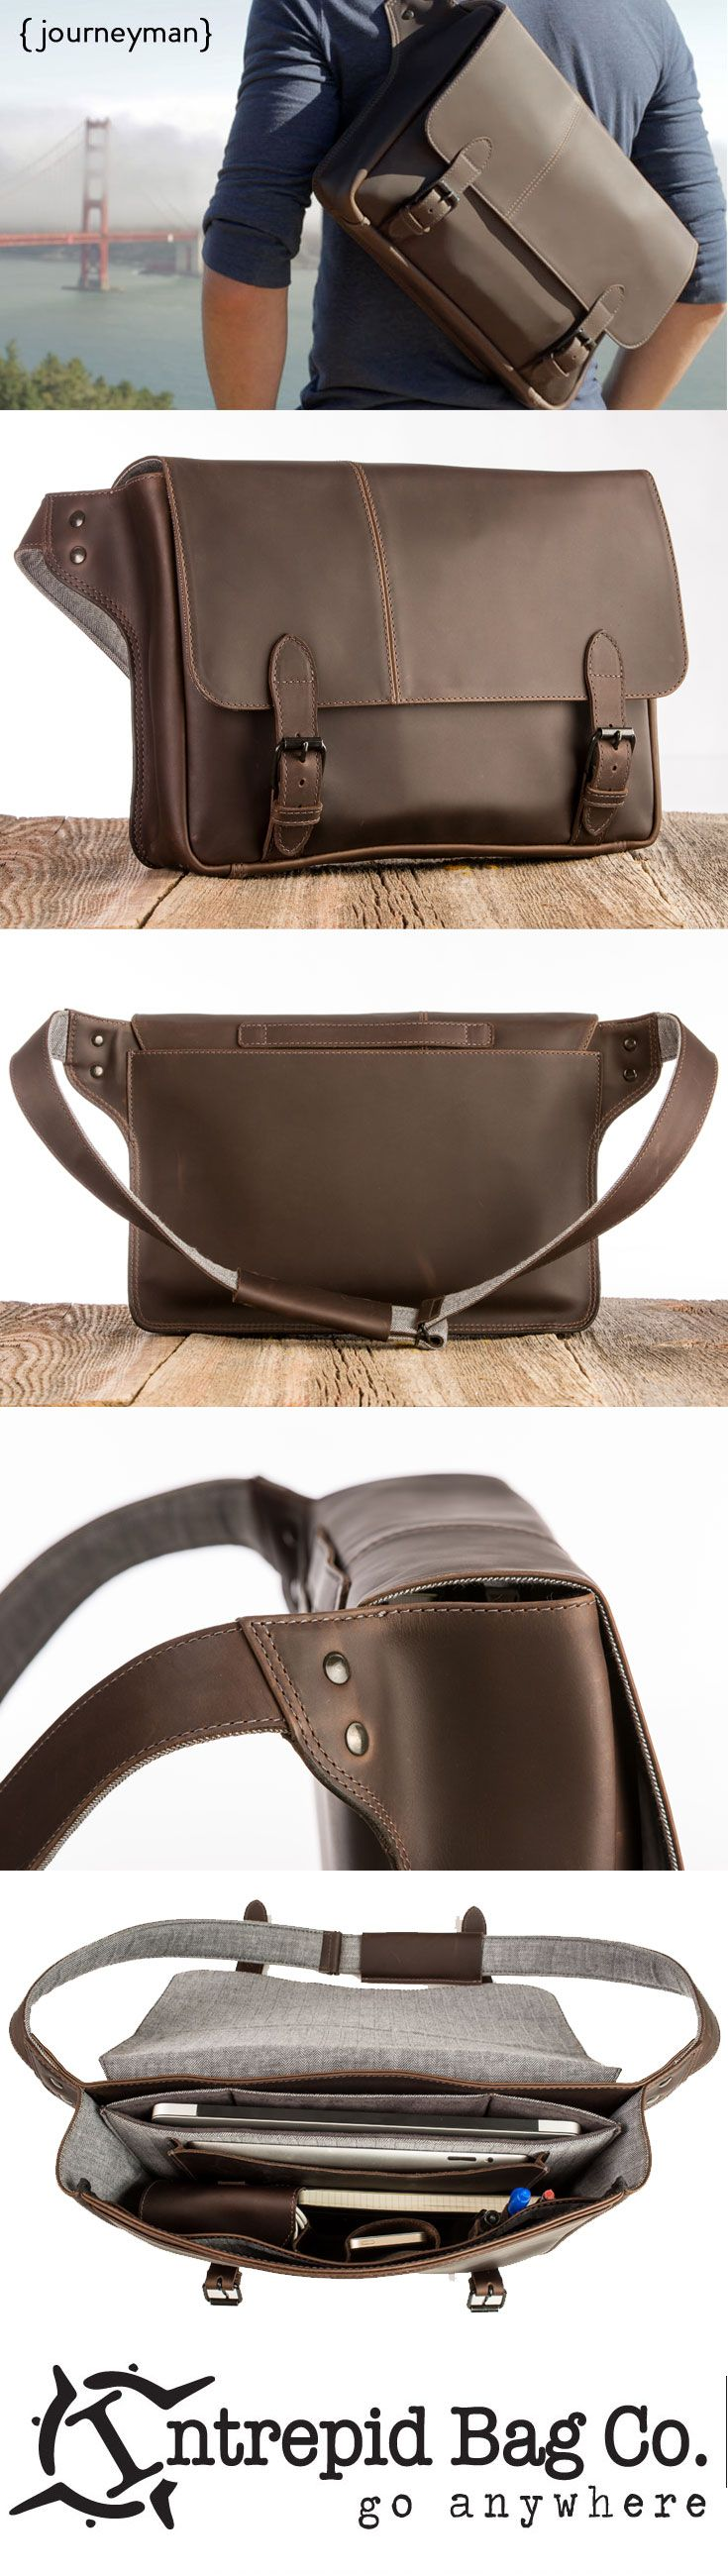 The Journeyman Commuter Leather Laptop Bag. Perfect for your every #EDC need. An adventure in a bag that Indiana Jones would be jealous of! Available now at www.IntrepidBags.com